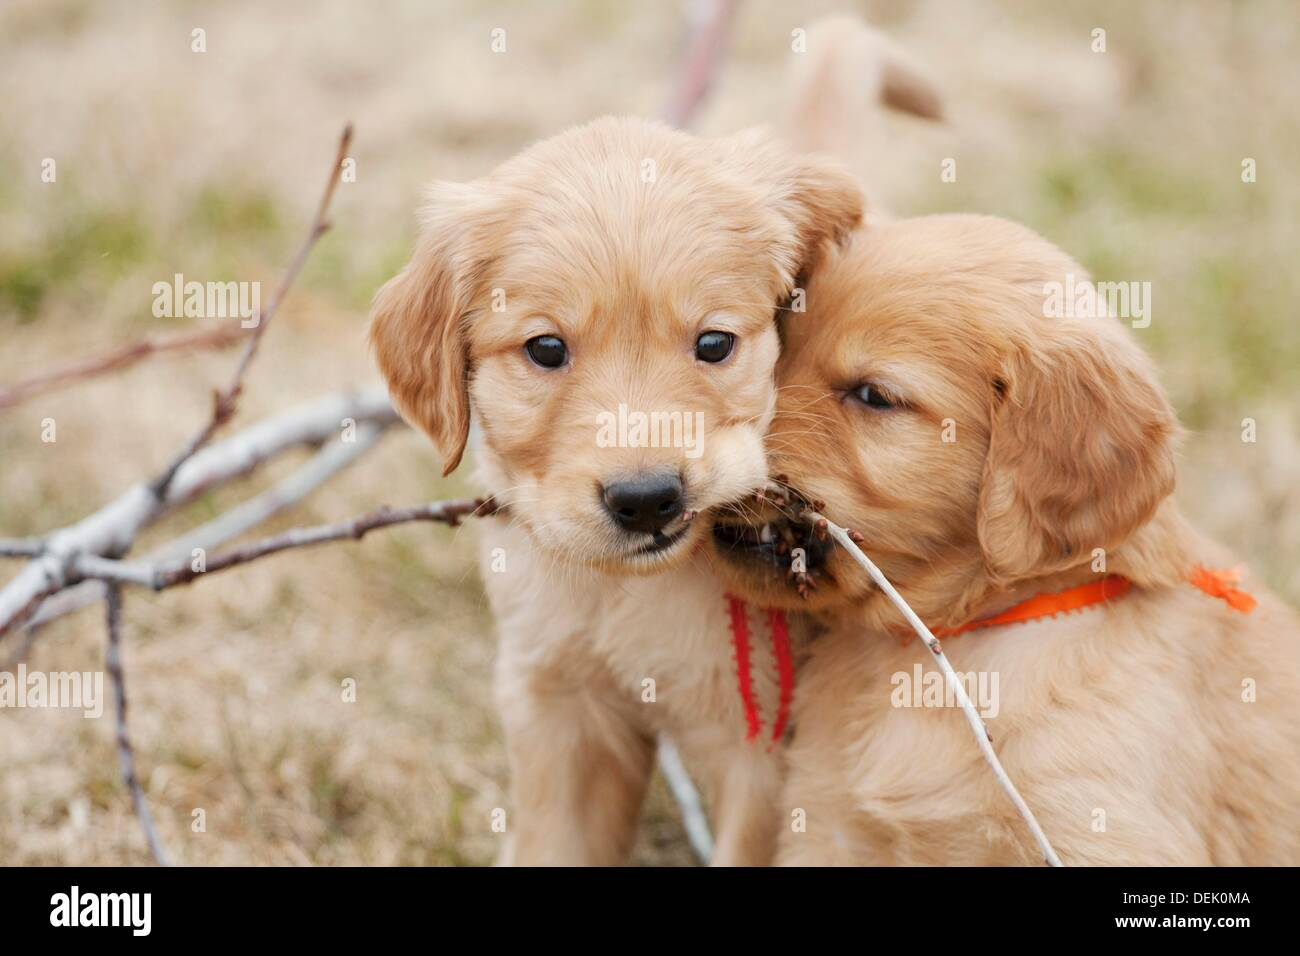 Golden Retriever Puppies Six Weeks Old Stock Photo 60653946 Alamy